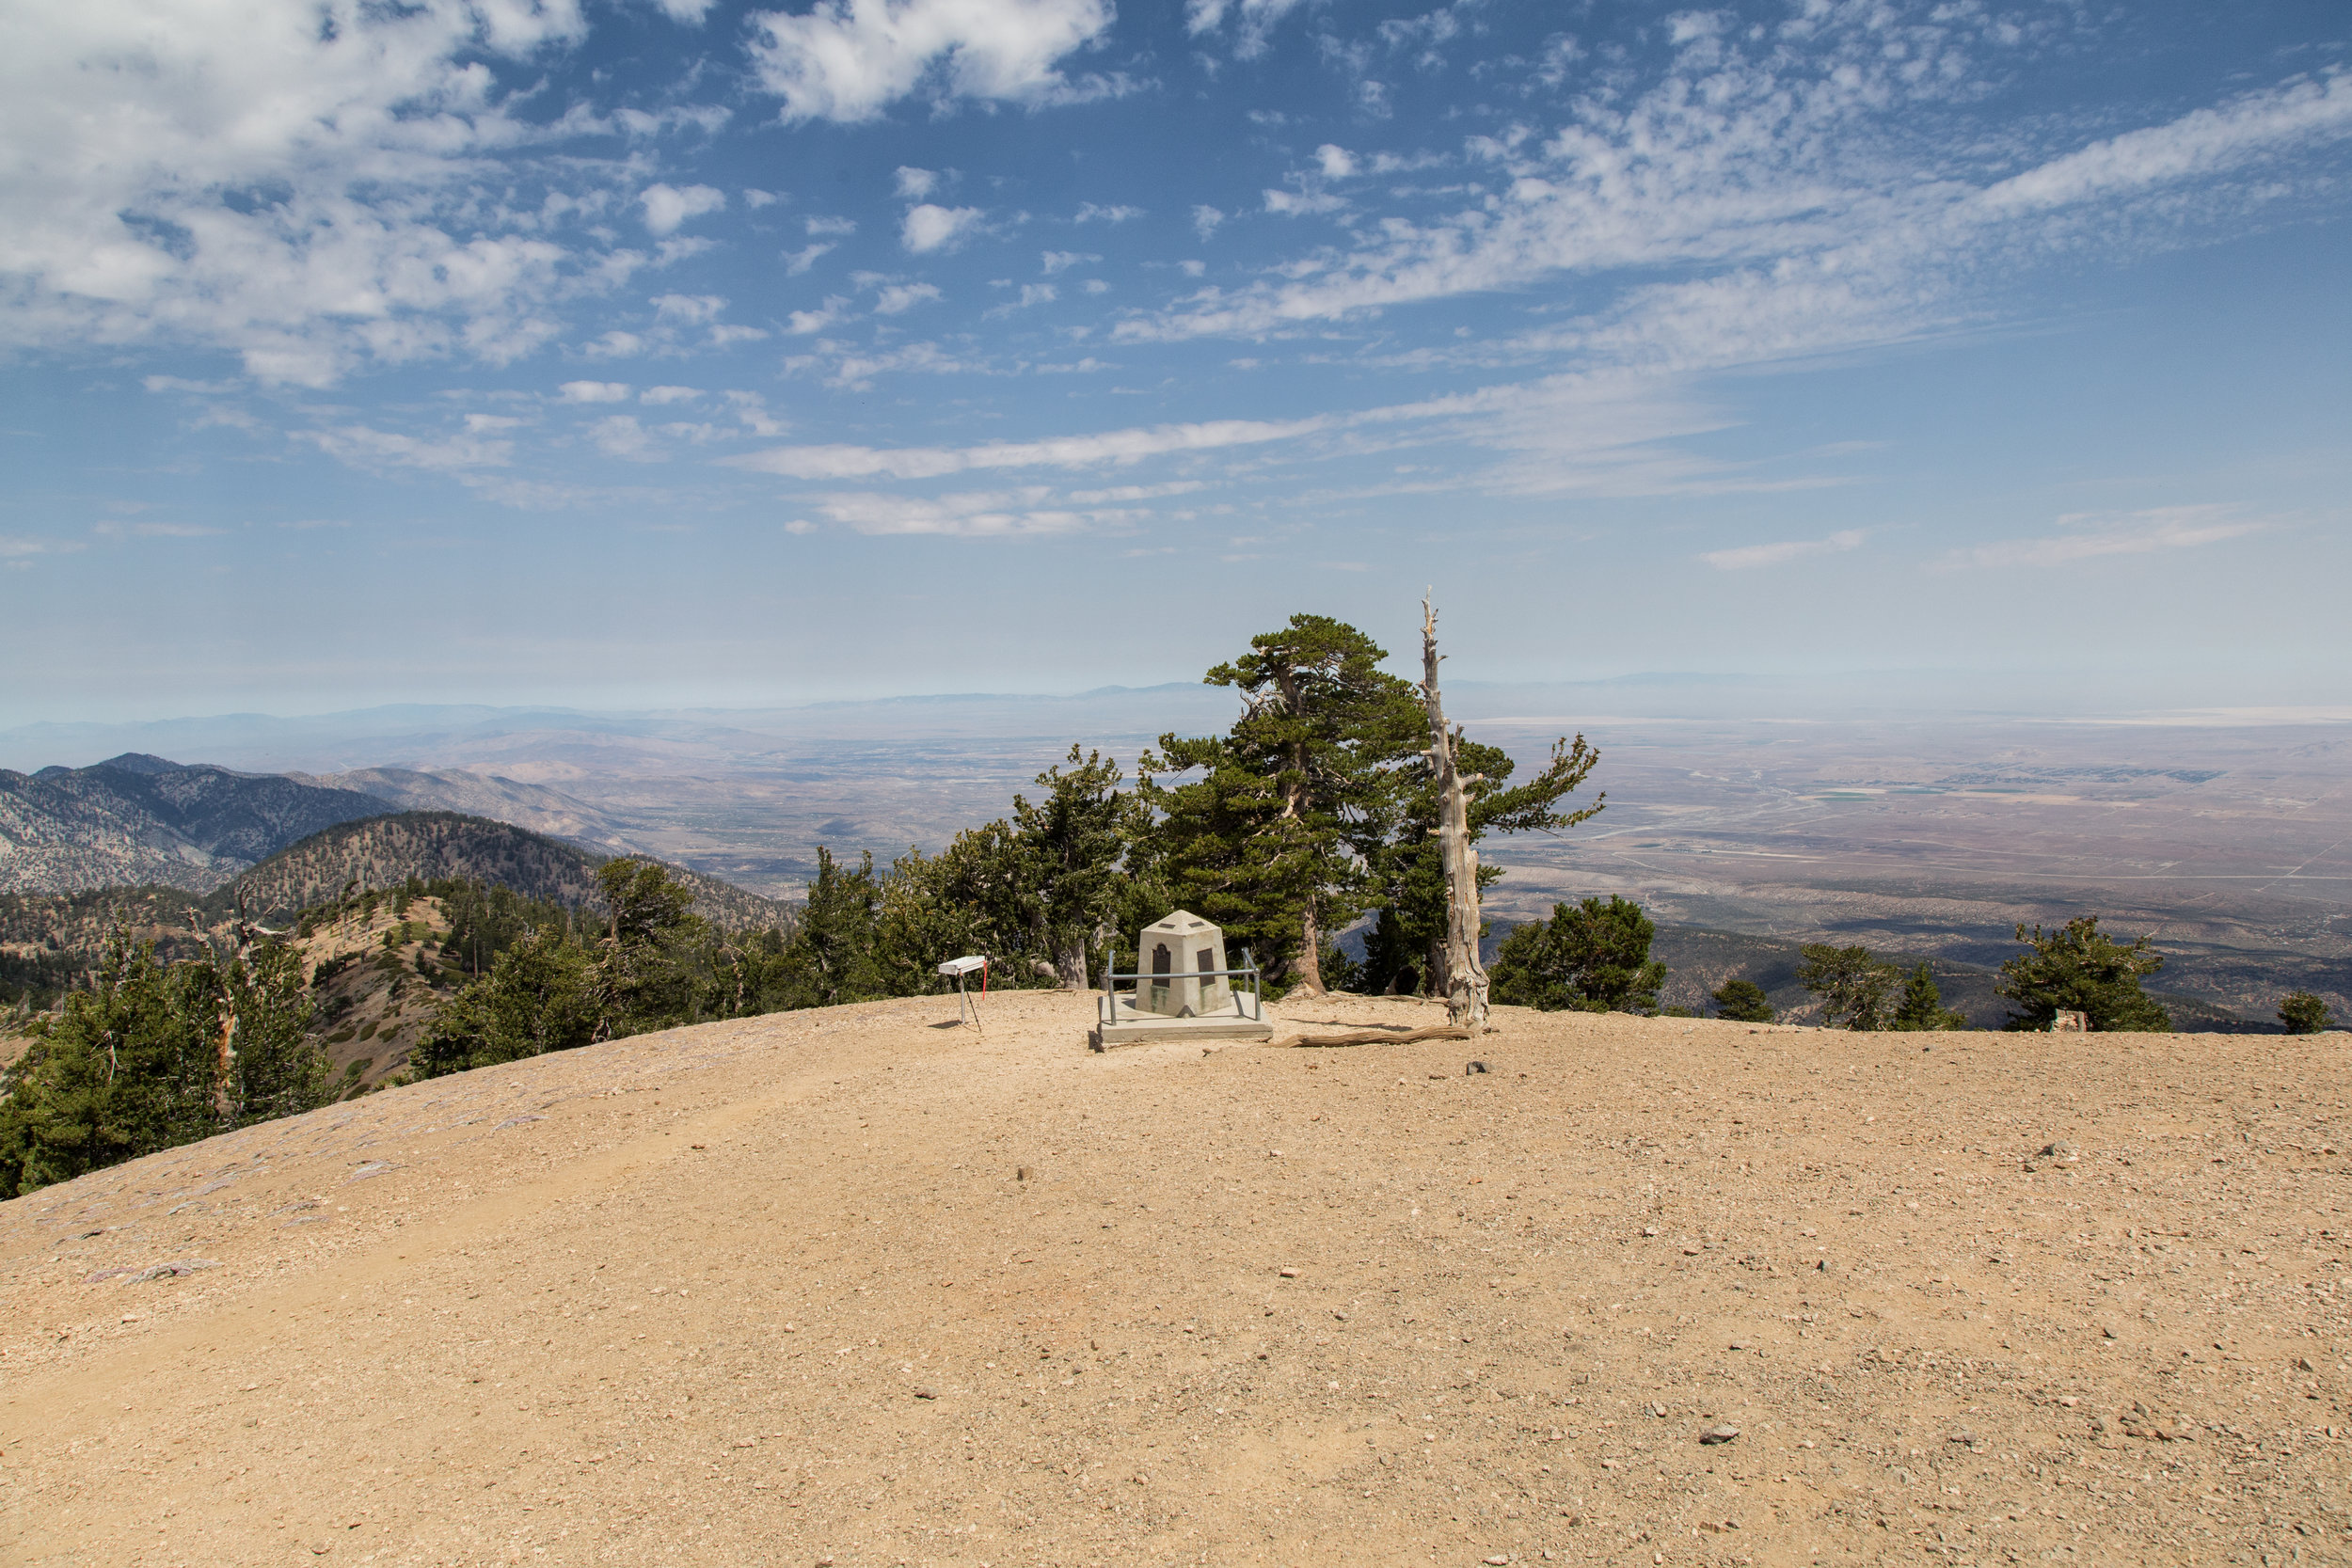 When we arrived, we had the whole summit to ourselves. We sat down under the shade of the limber pines, had some lunch and enjoyed the views. Soon after, we began to see other hikers reaching the top.